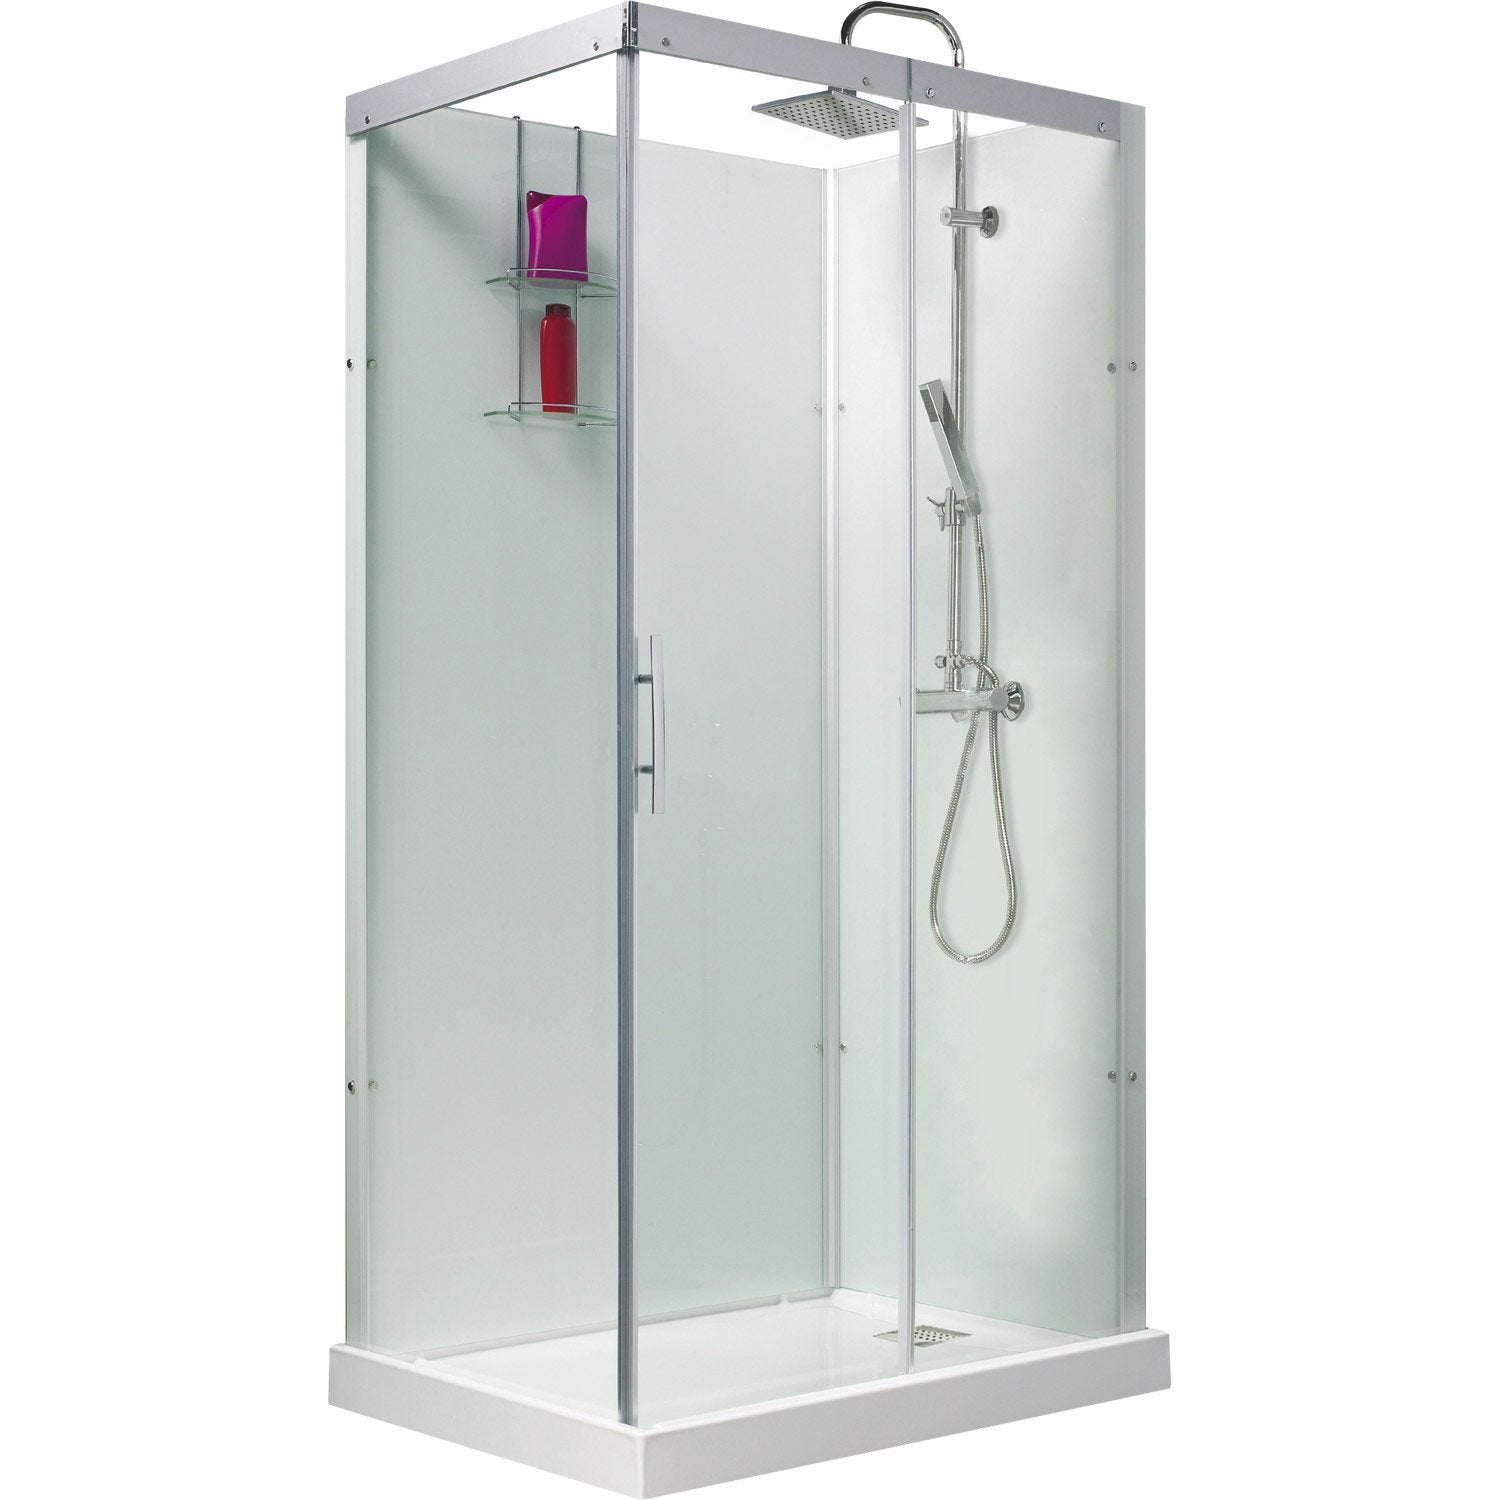 Cabine de douche rectangulaire 110x80 cm thalaglass 2 for Prix douche italienne leroy merlin